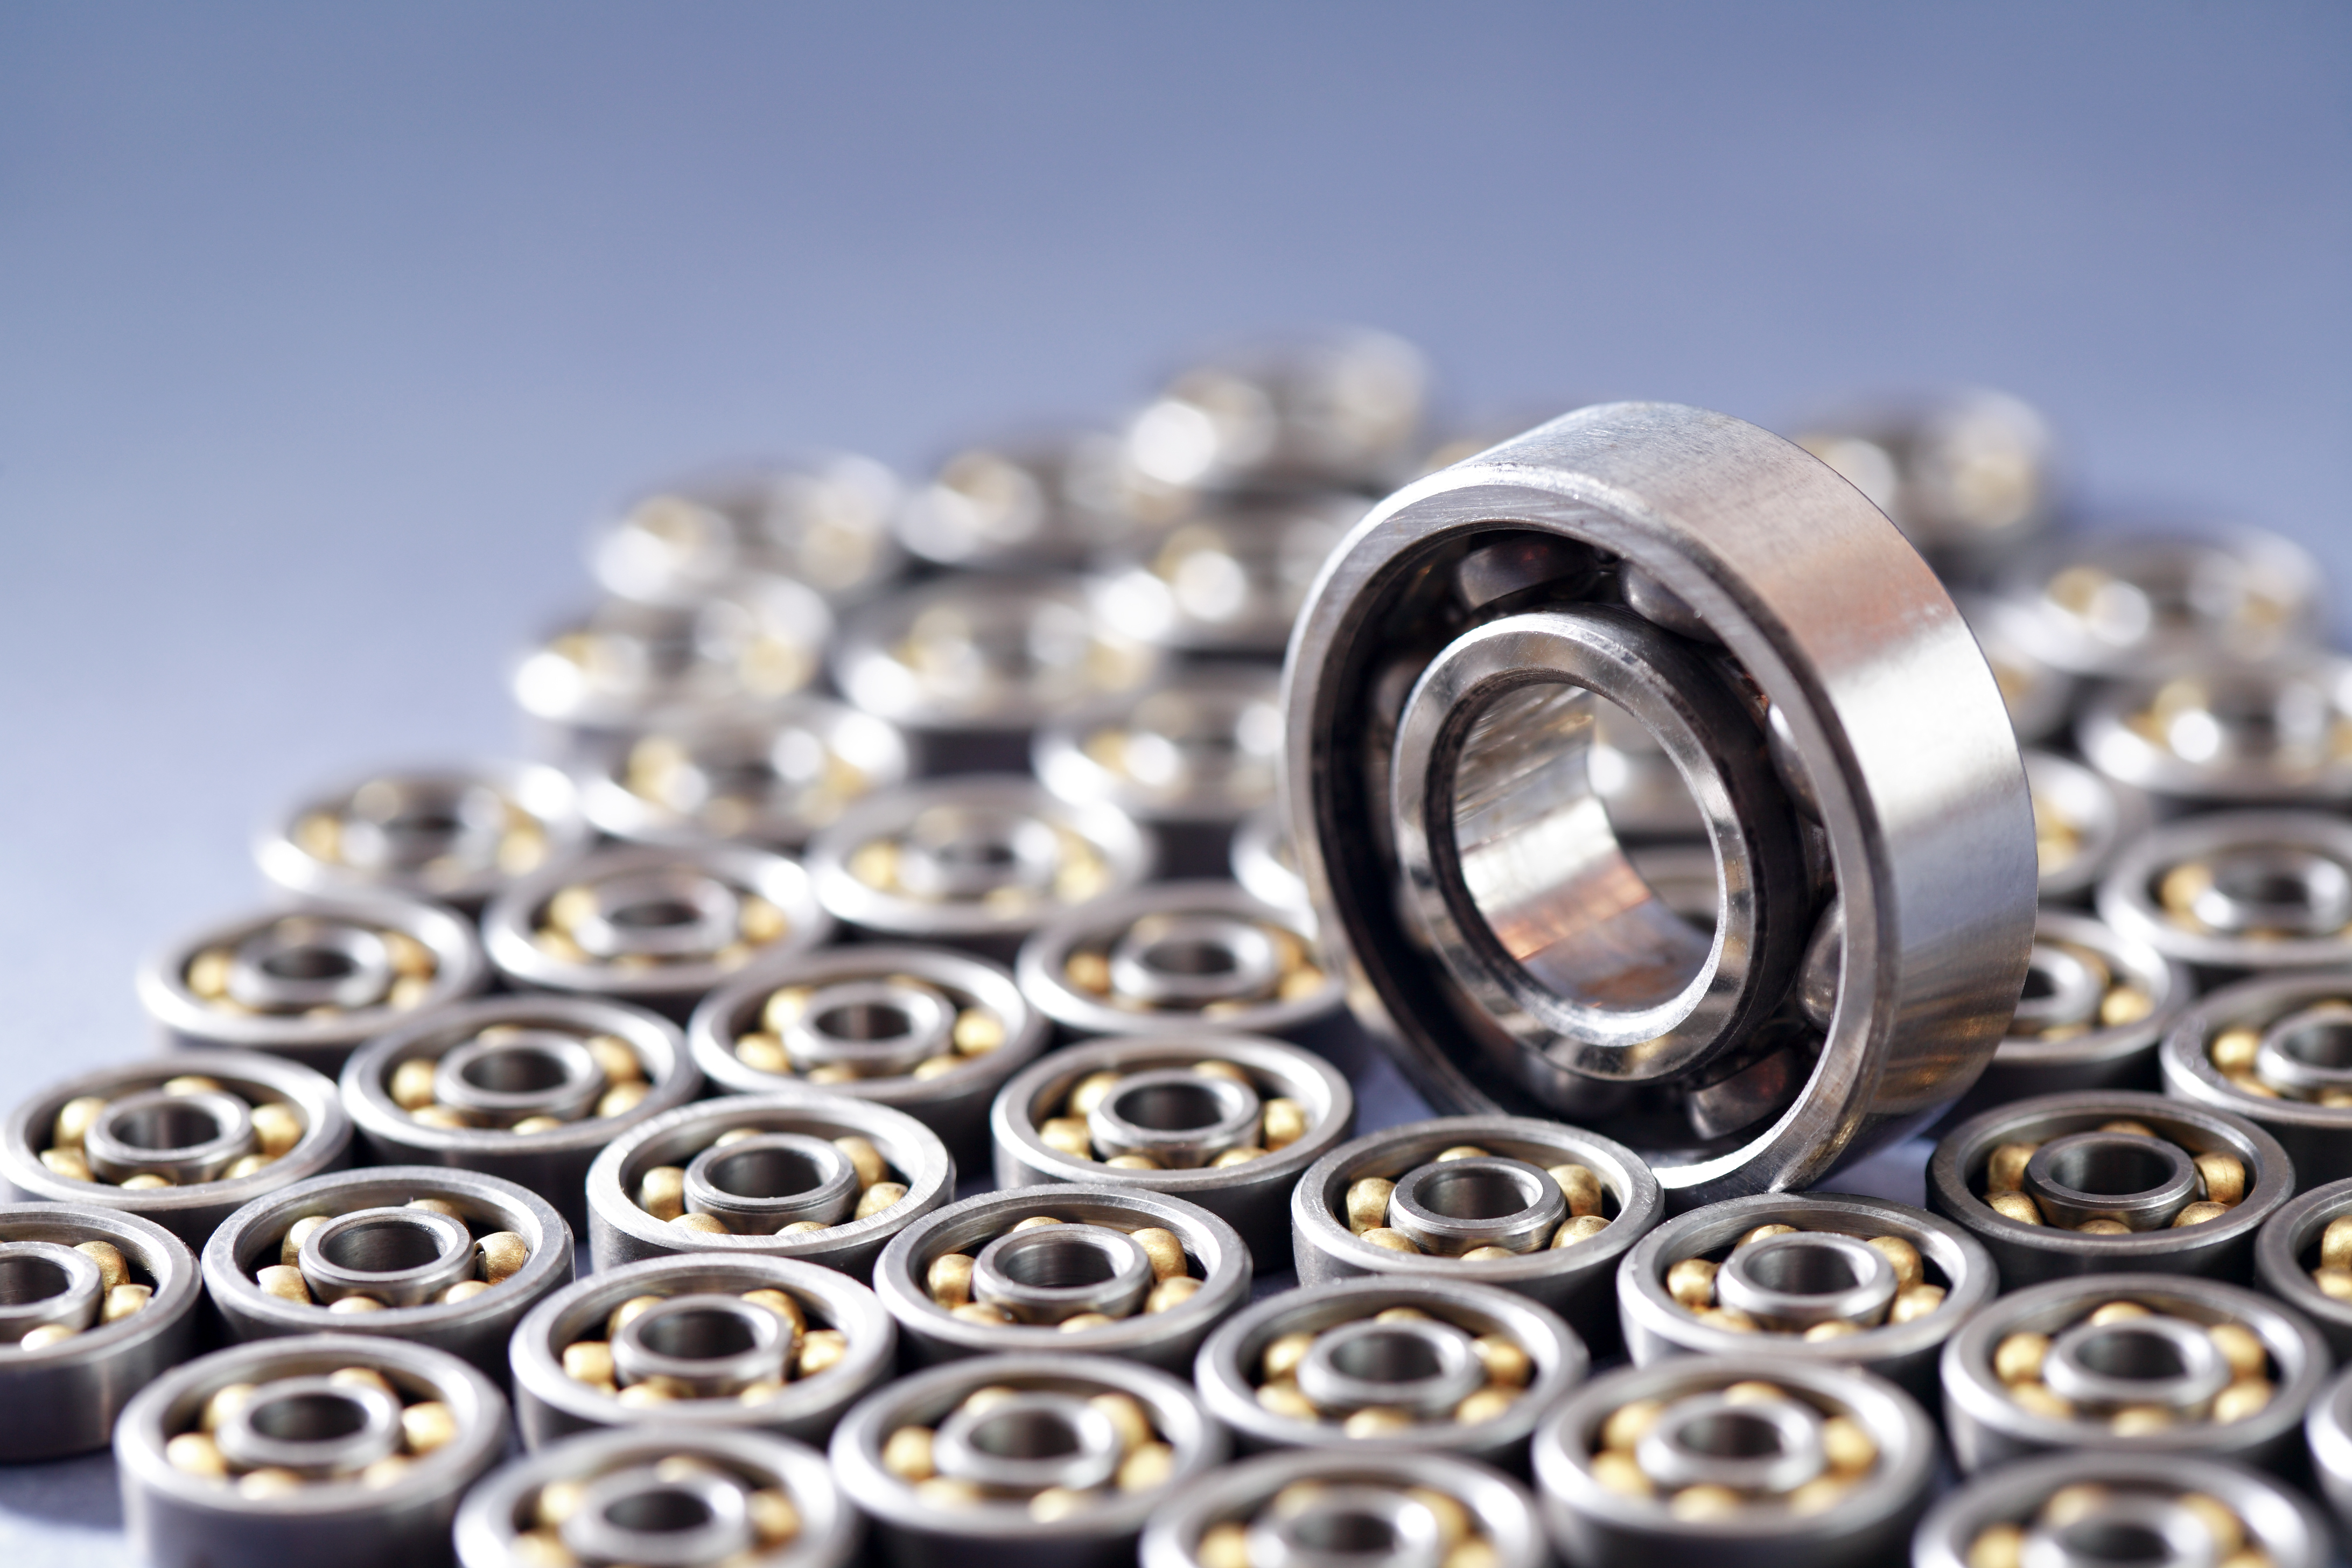 Types of Bearings and What to Use Them For